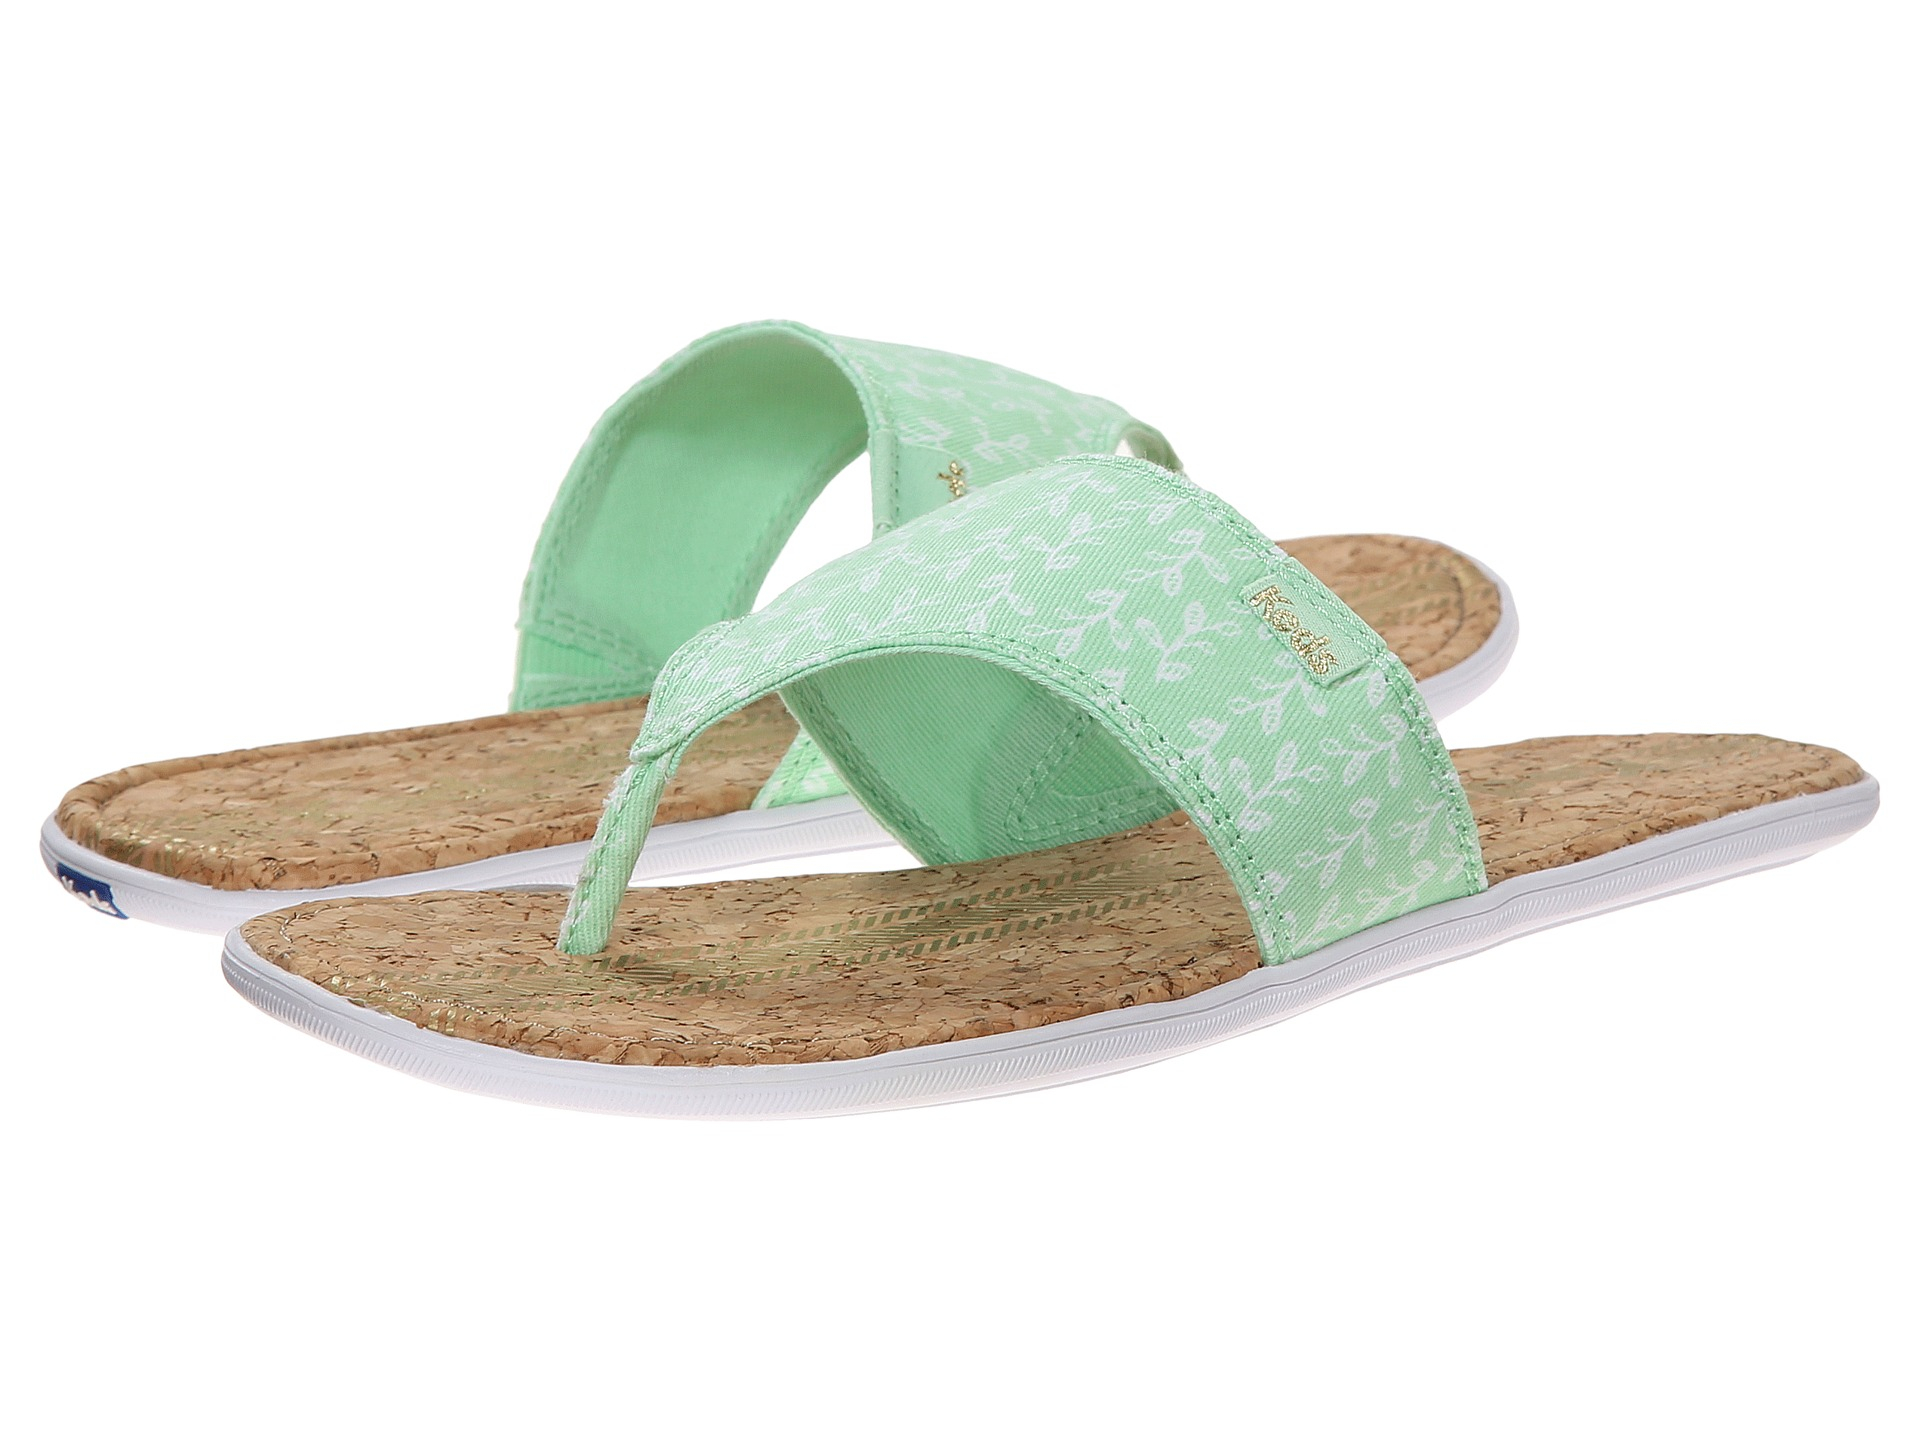 b772256aa86 Lyst keds tealight wide band thong in green jpg 1920x1440 Wide band flip  flops